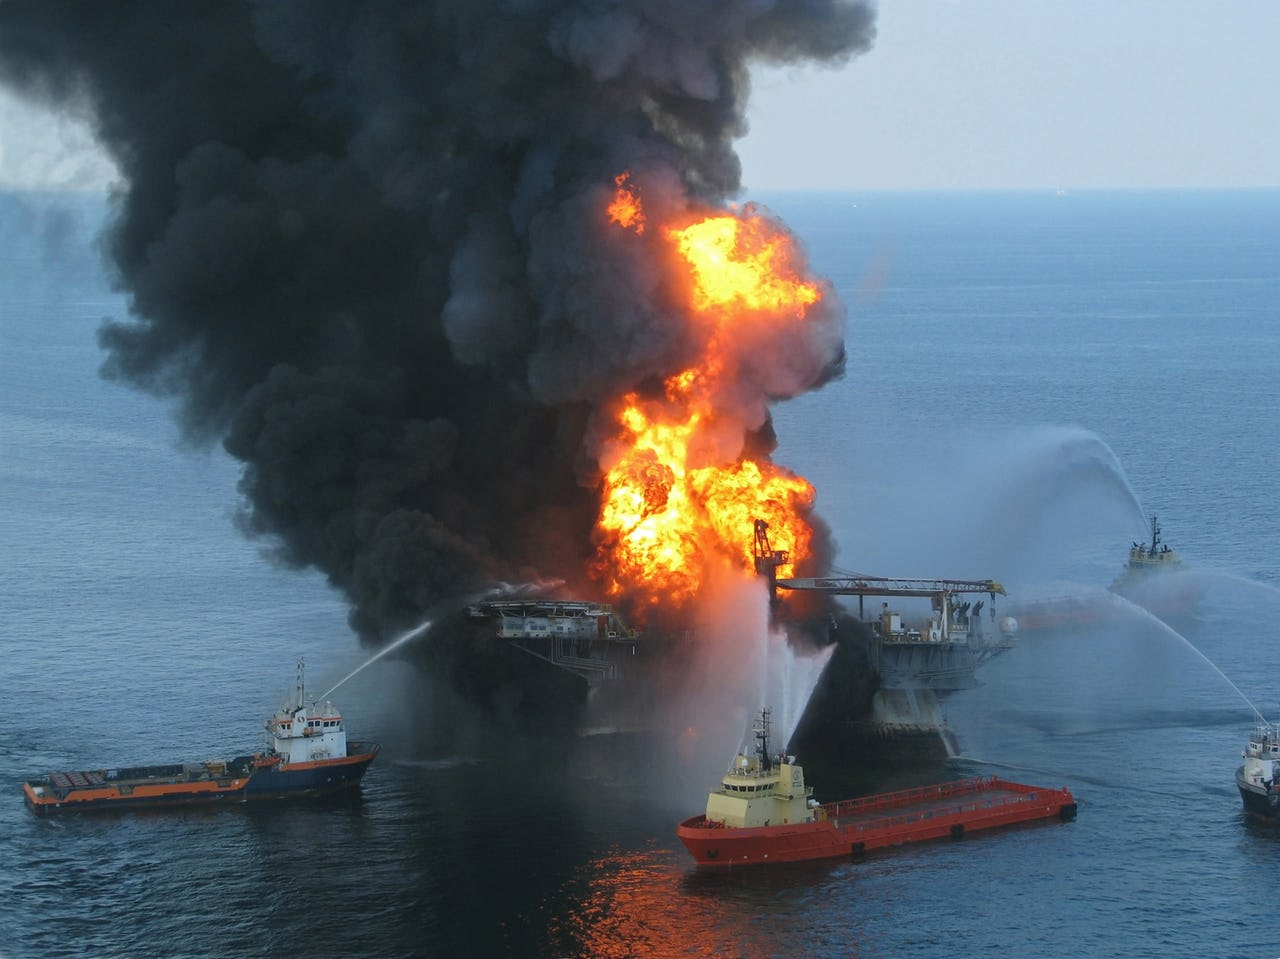 Fire on offshore drilling platform